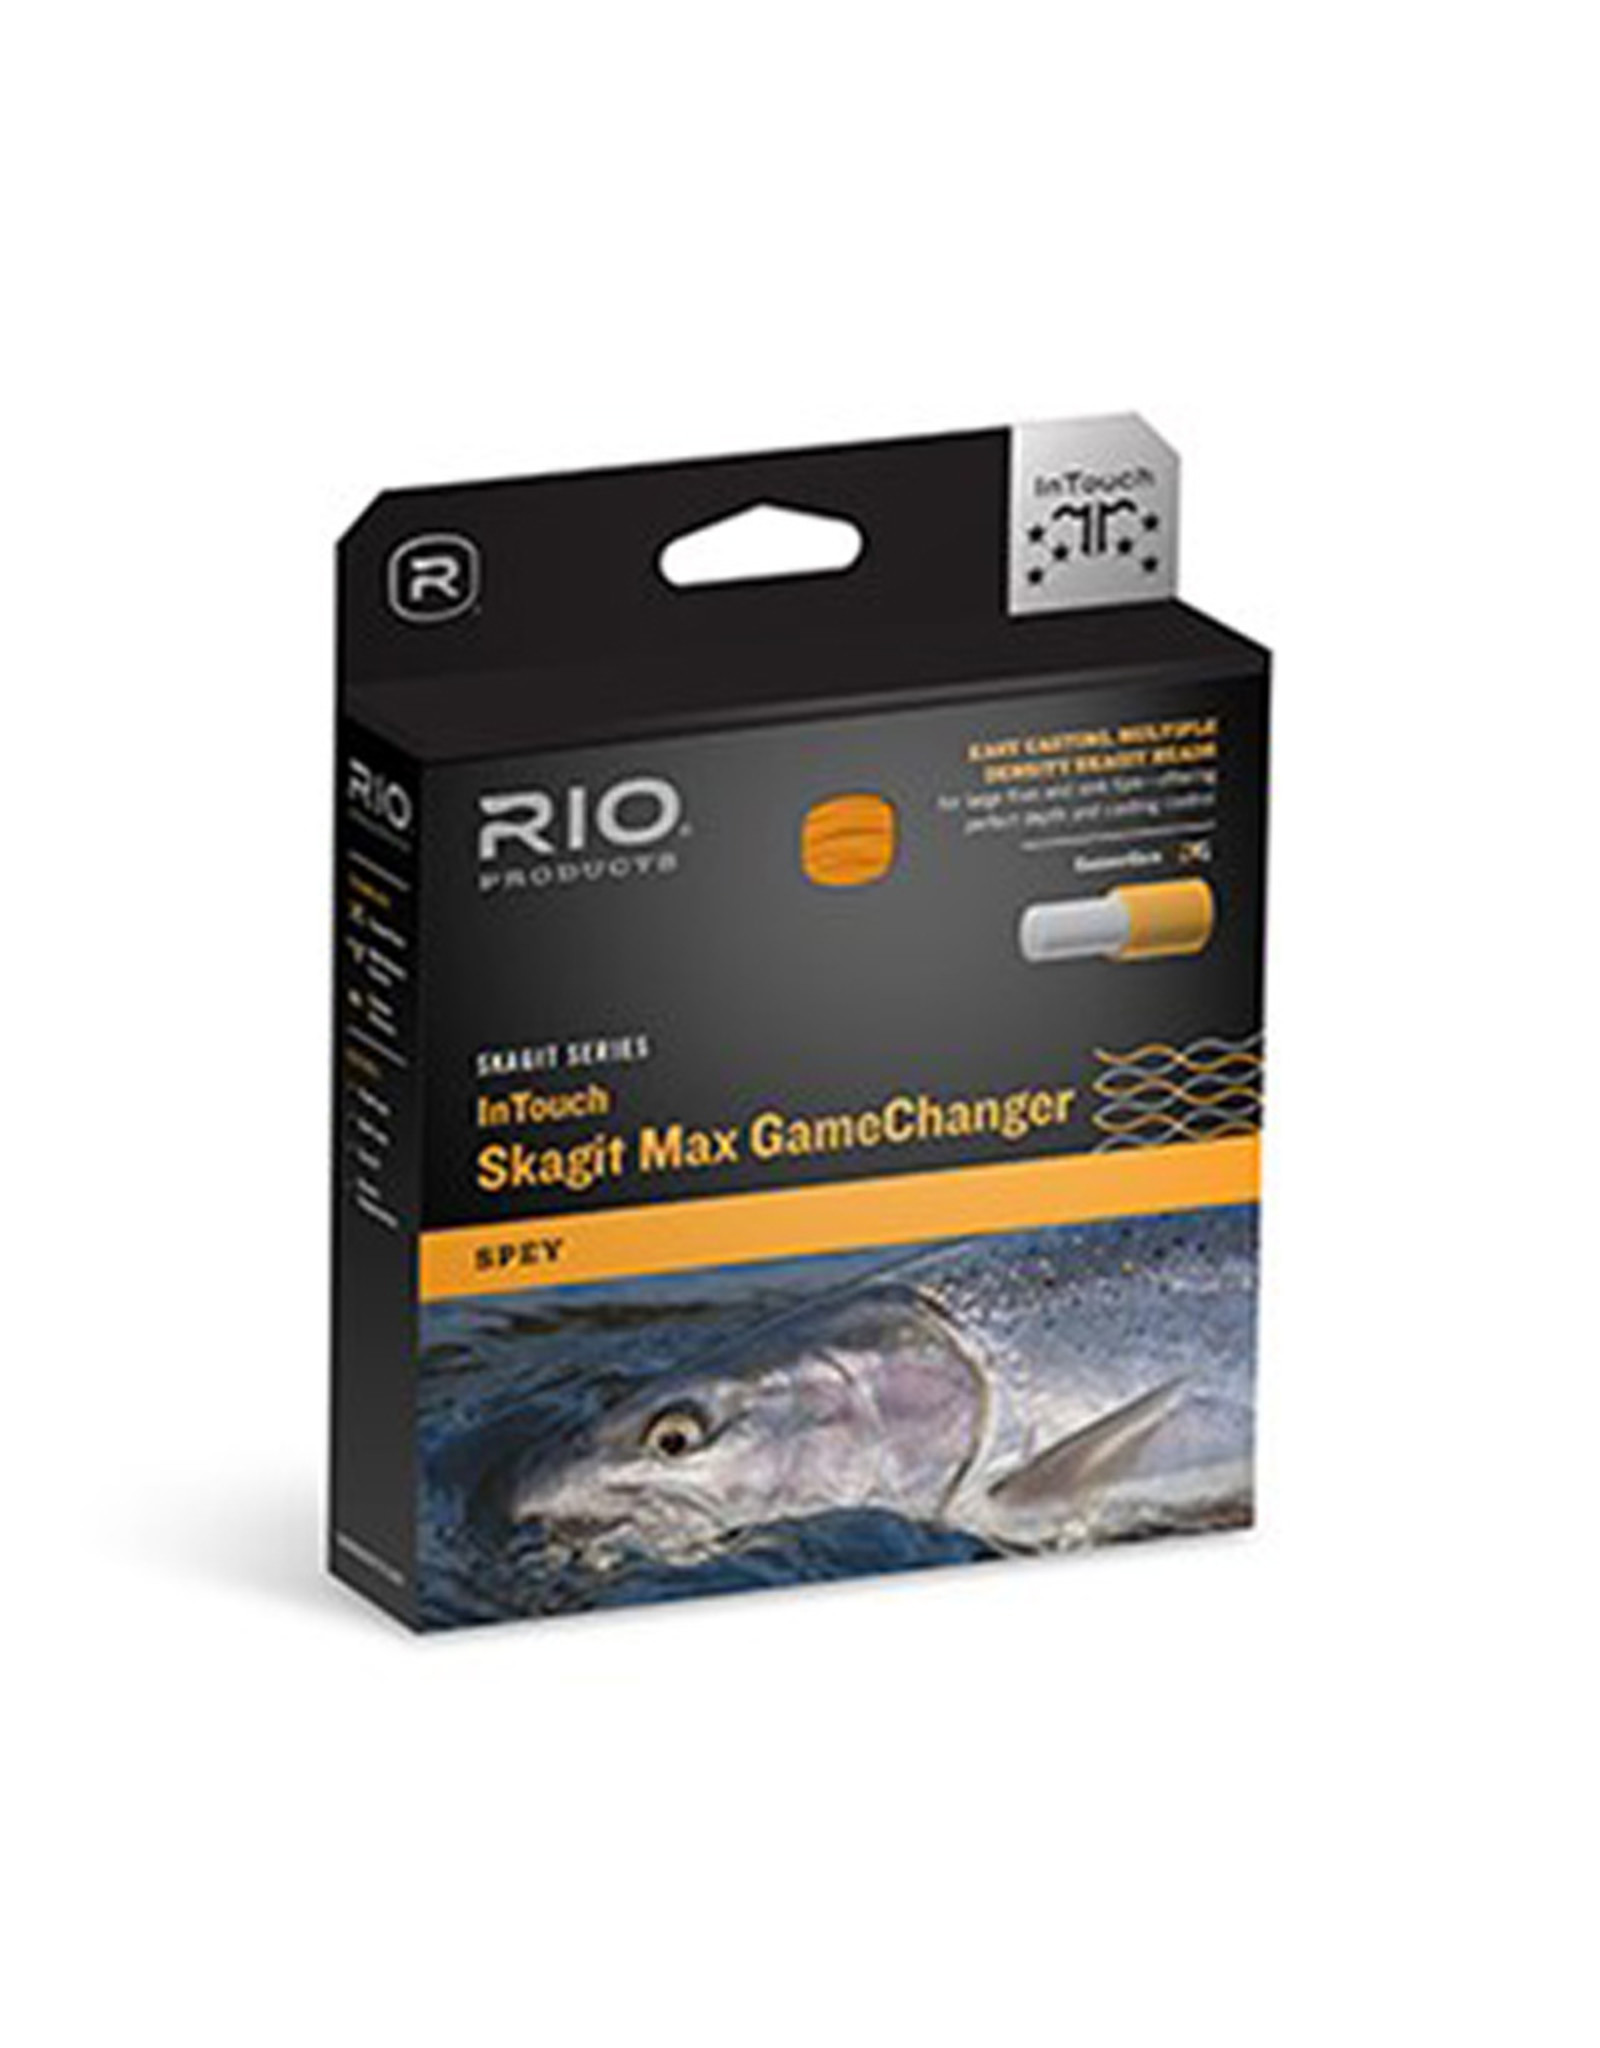 RIO Products InTouch Skagit Max GameChanger F/H/I/S3/S5